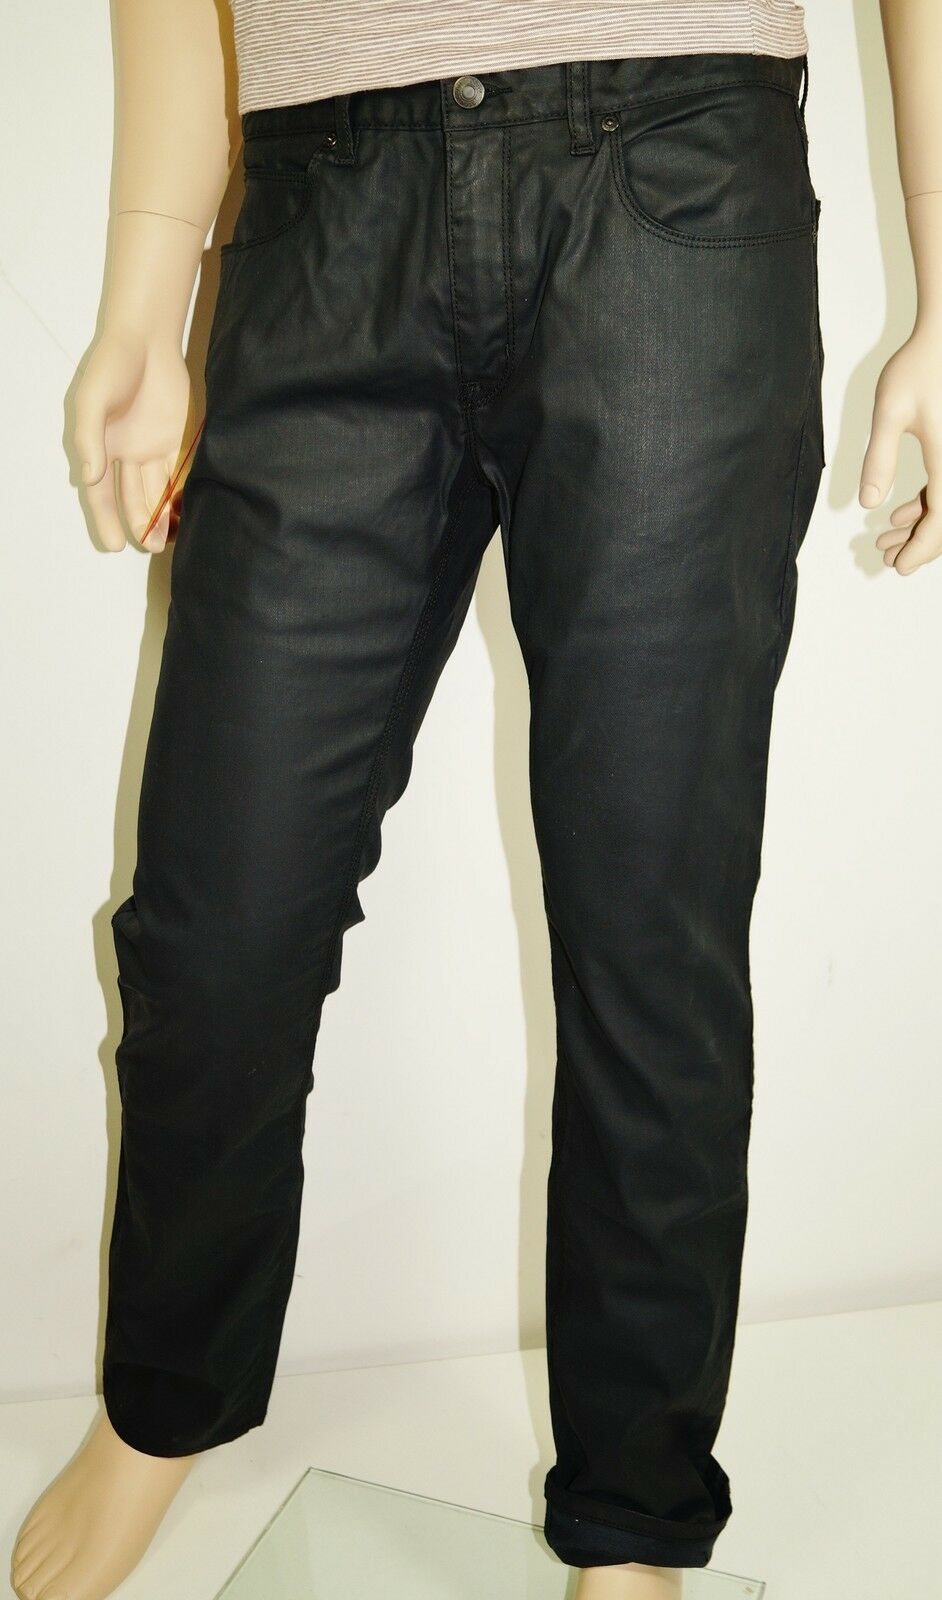 Neu - Hugo Boss - W36 L32  rot 708 Stretch - waxed Slim Fit Jeans schwarz  36 32